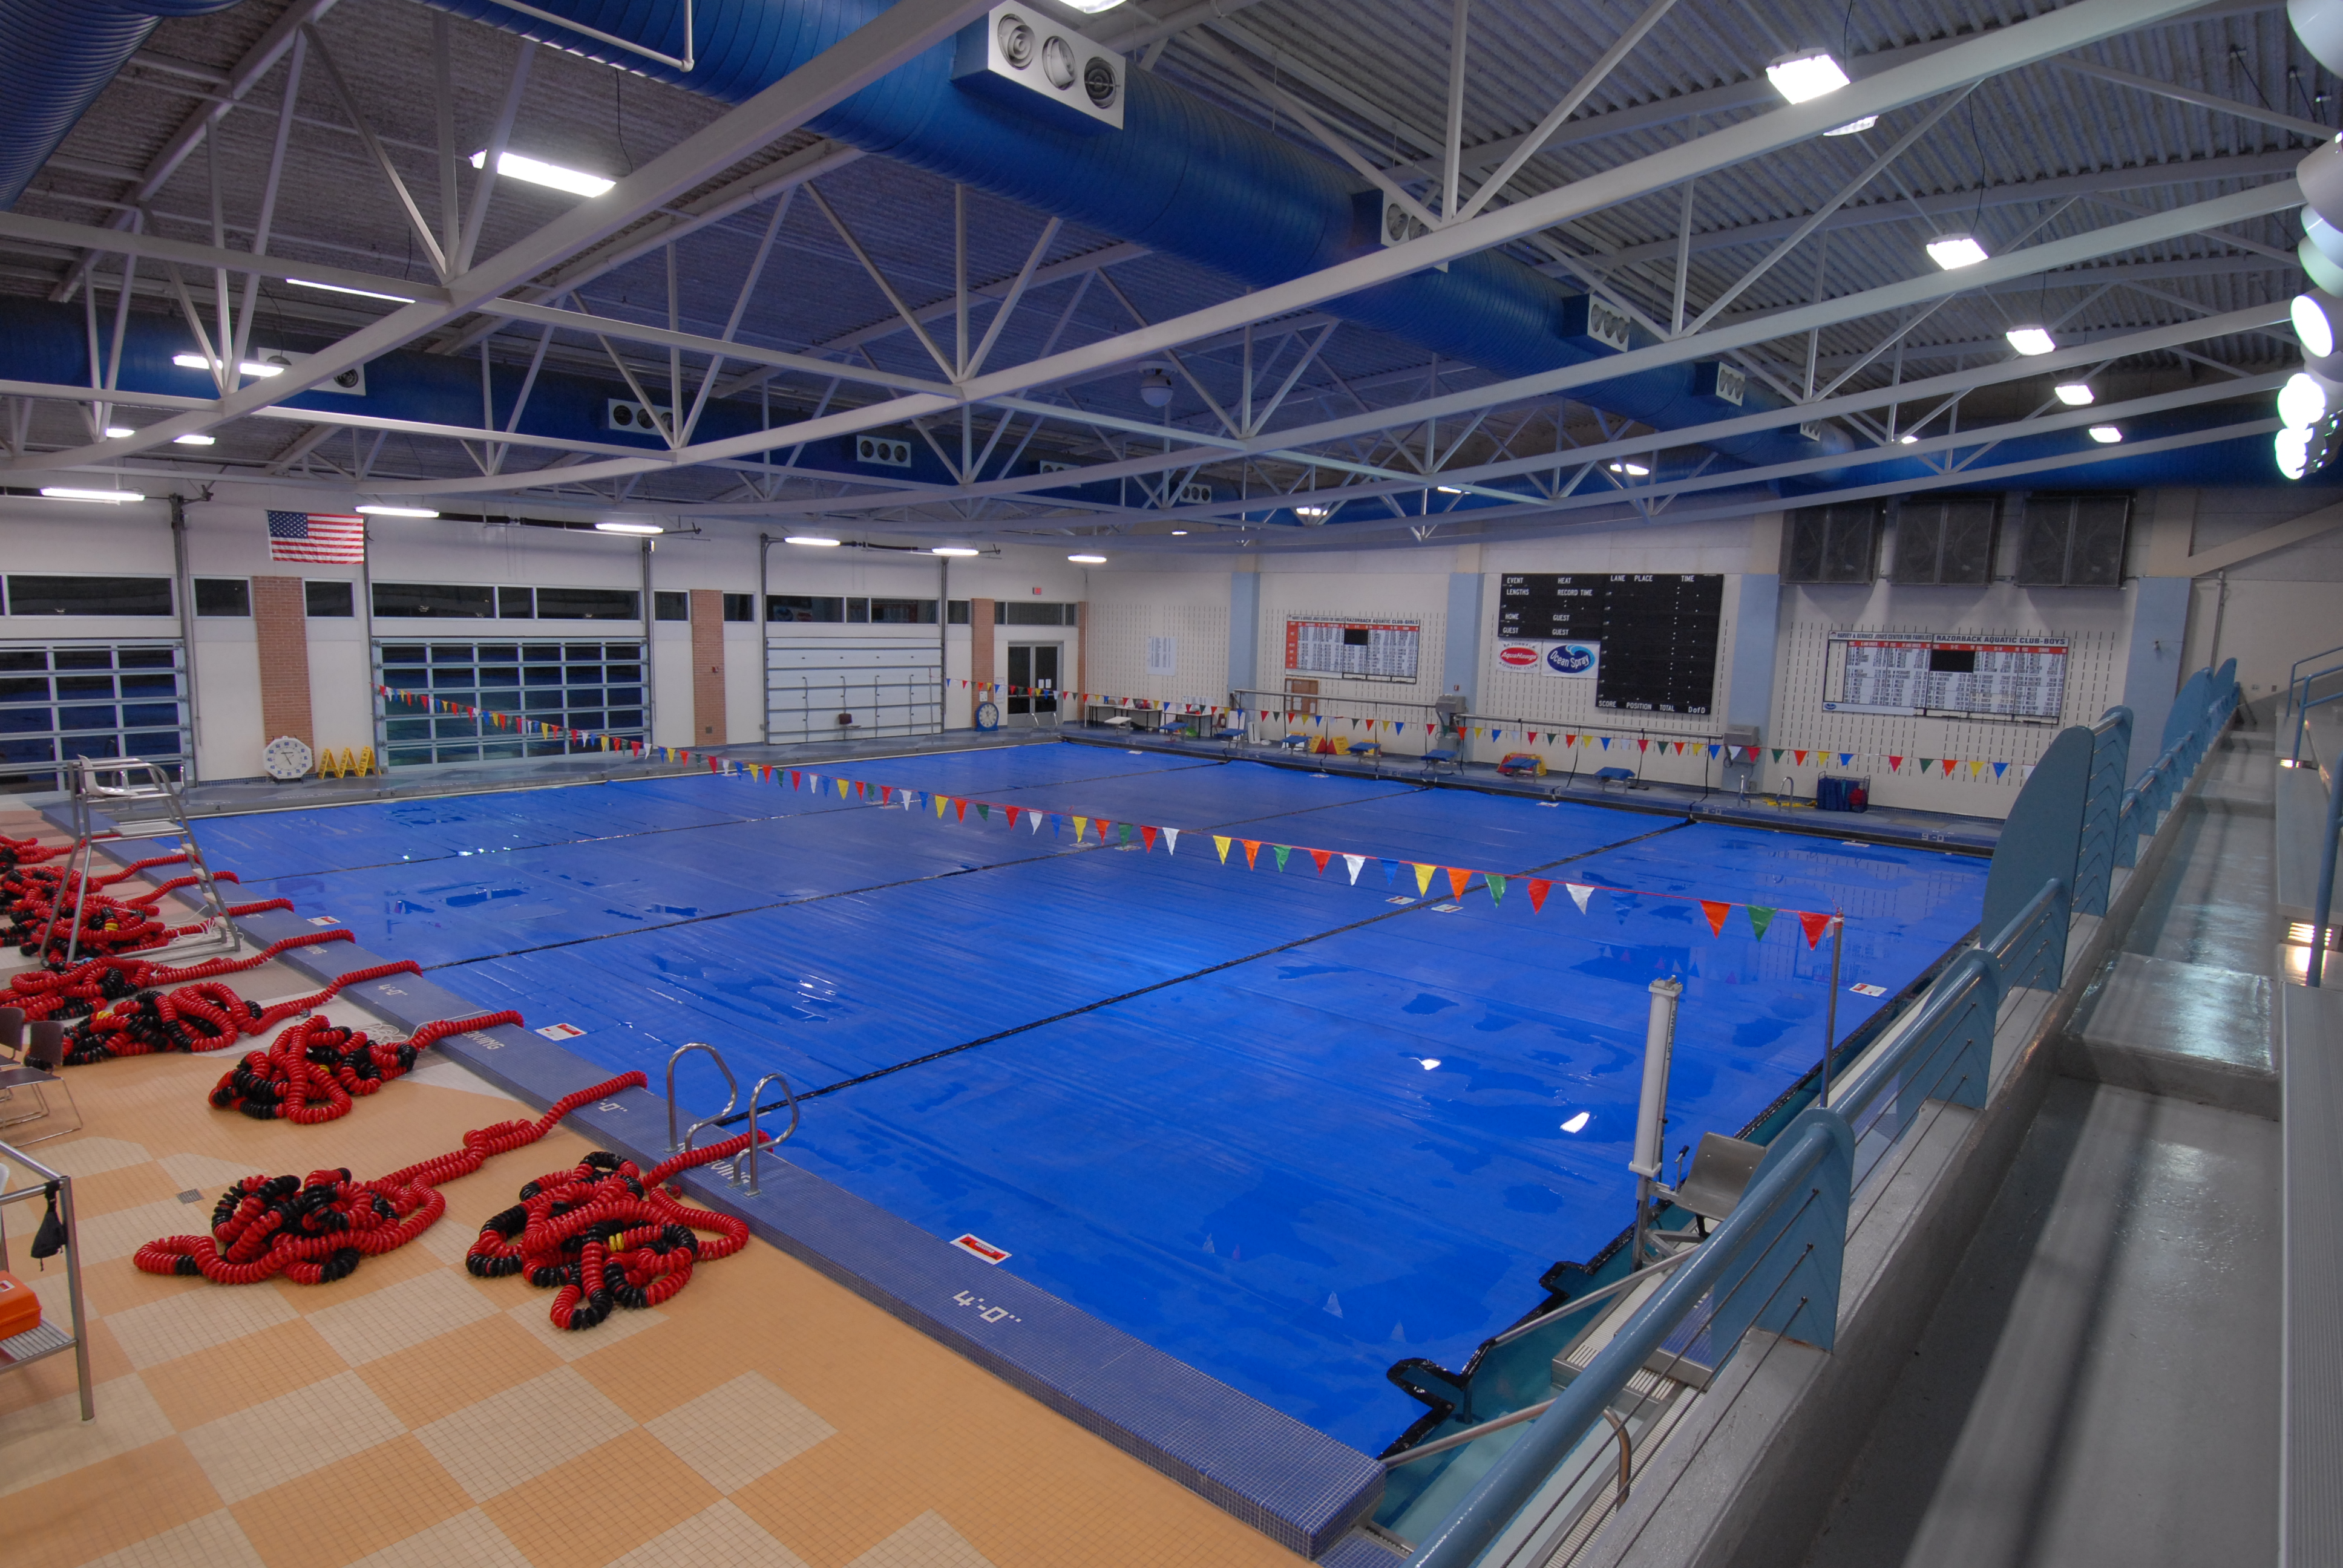 Thermal swimming pool covers spectrum products for Swimming pool service software